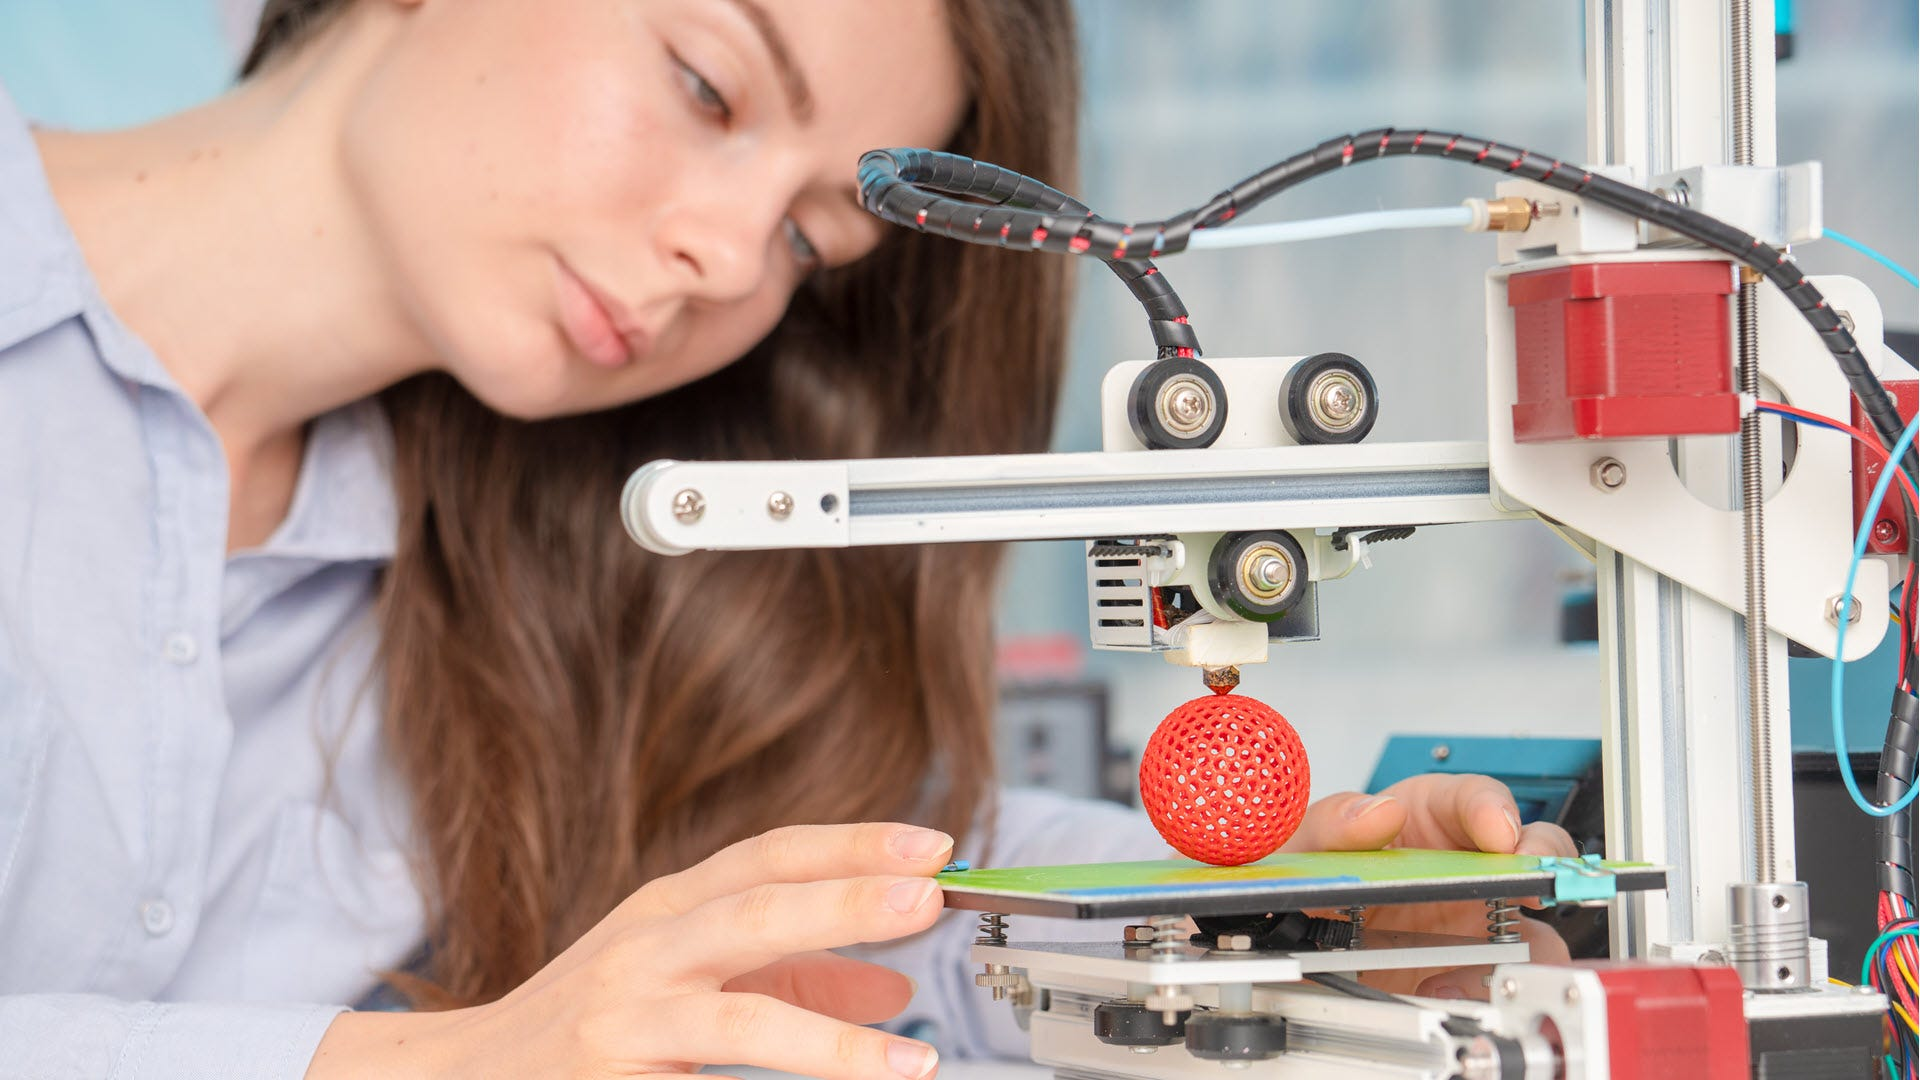 A woman looking at a 3D print in process.